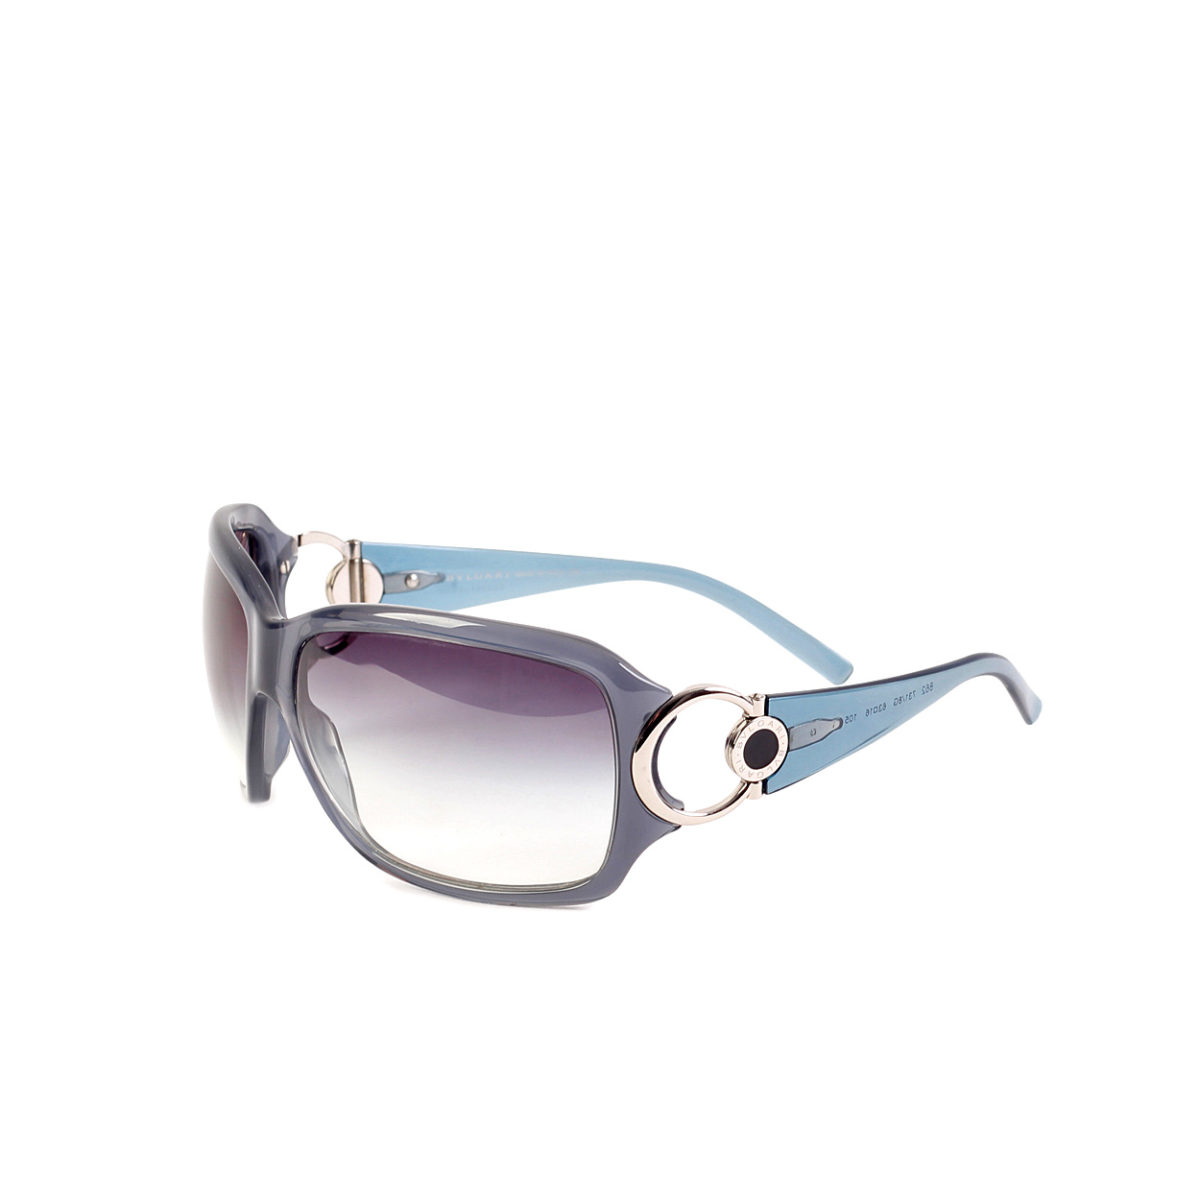 a8e114c1ceb BVLGARI Oversized Acetate Sunglasses Smoke Blue